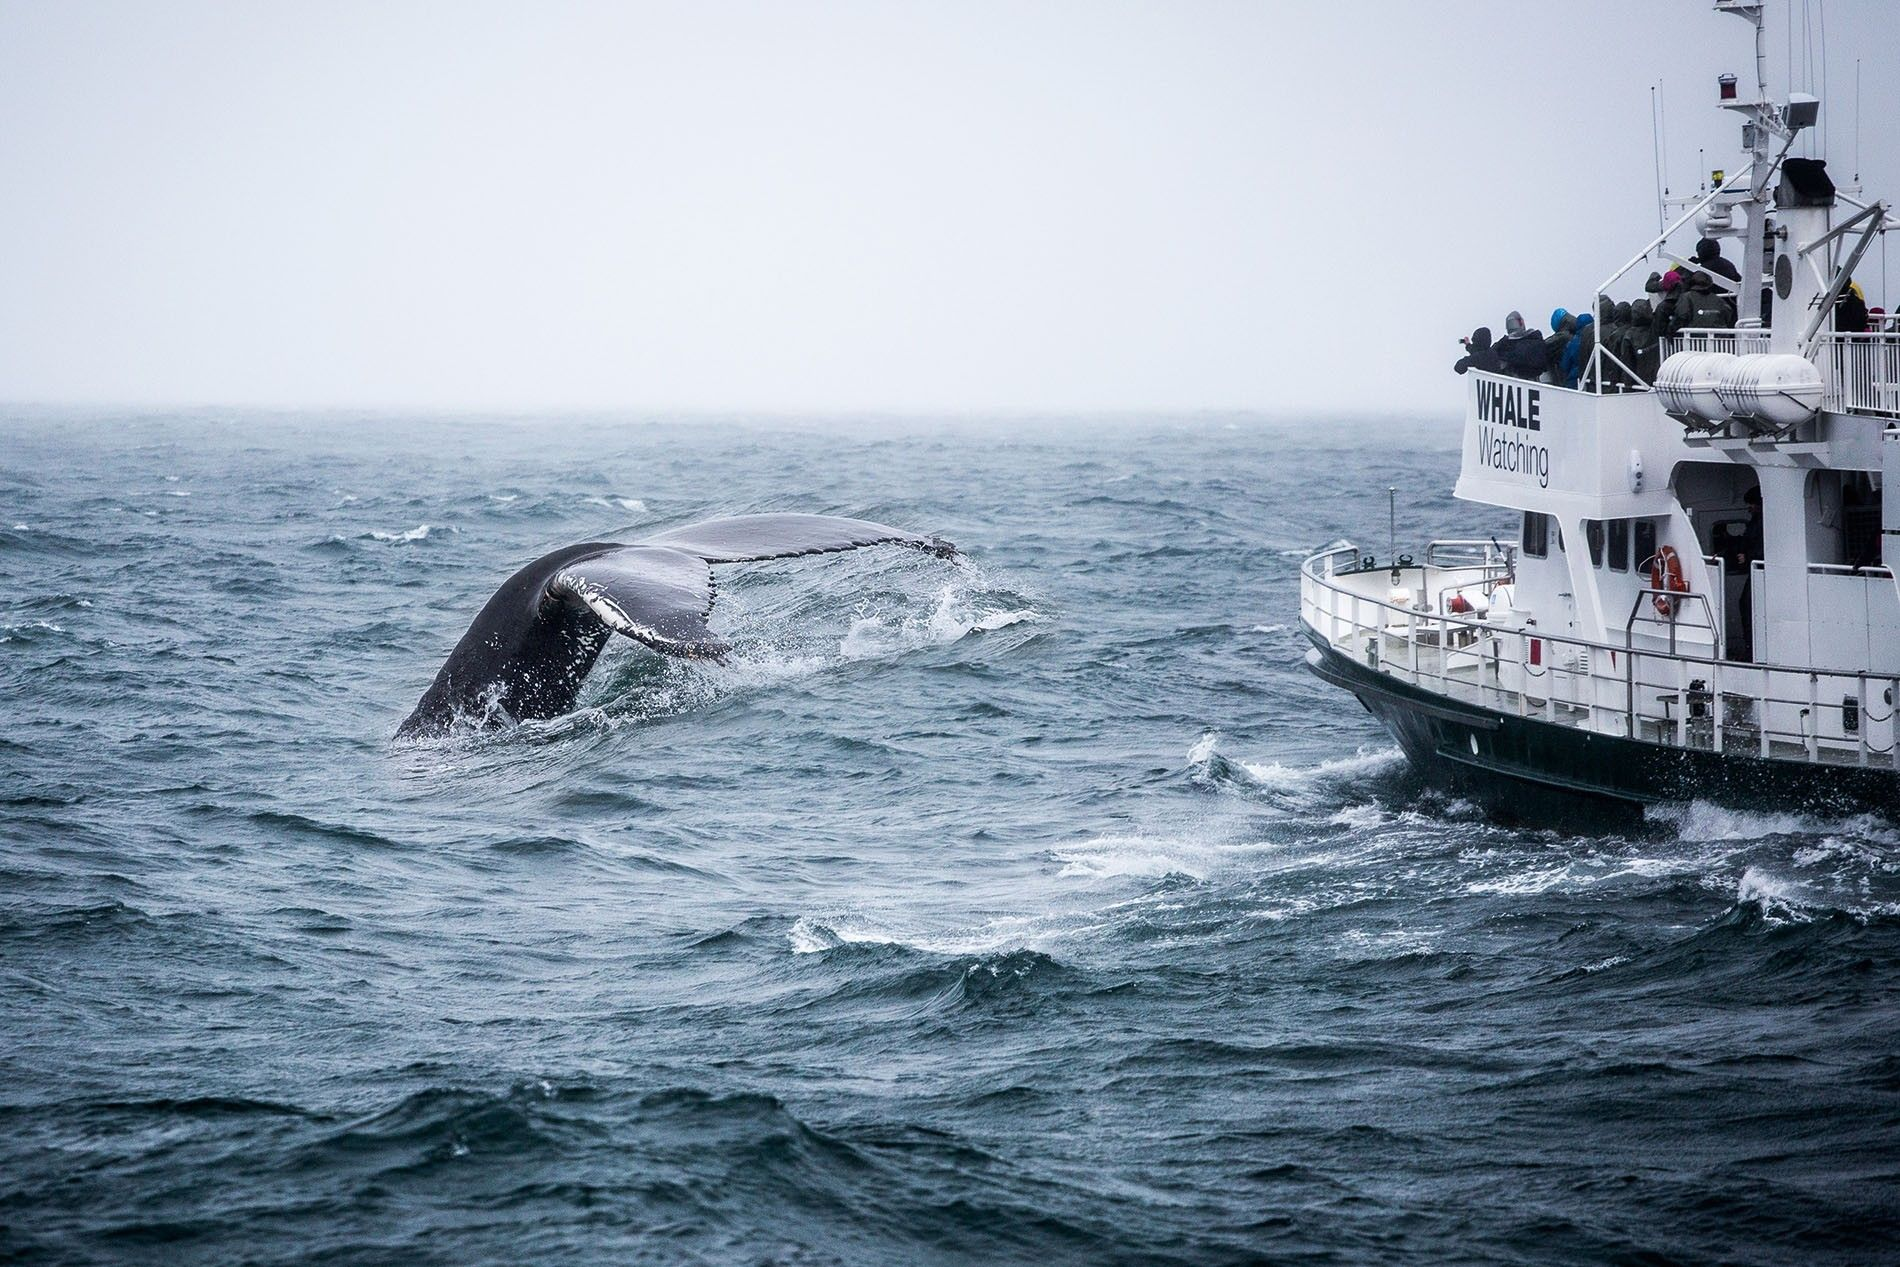 A humpback whale's tail in the water beside a boat.